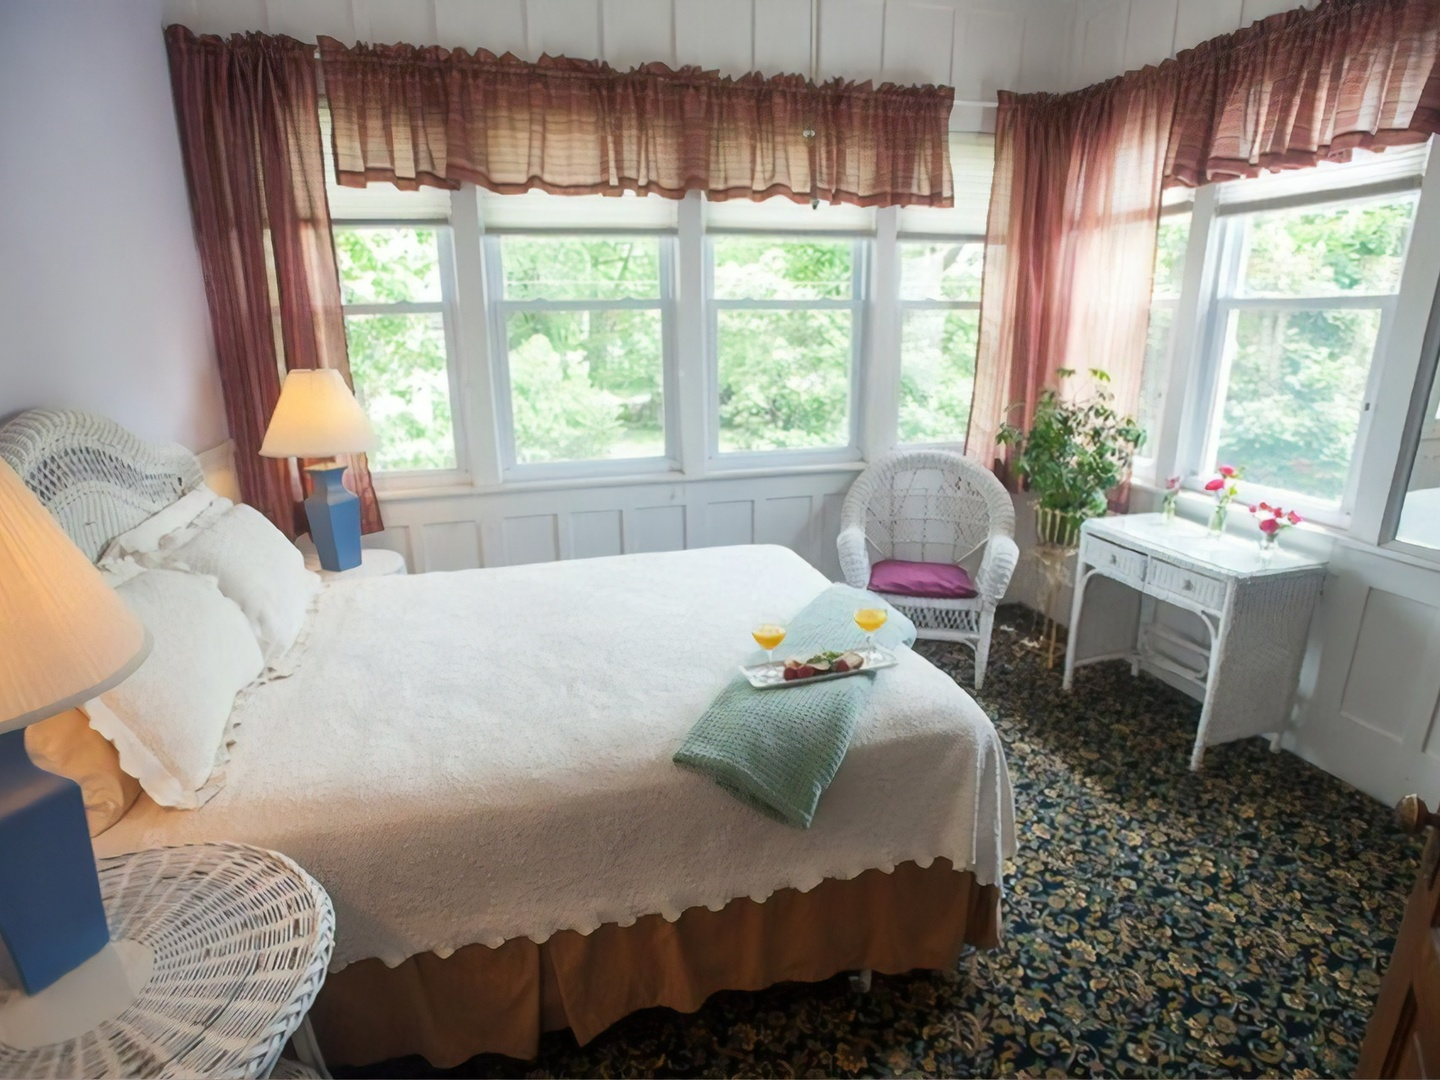 A bedroom with a bed and a large window at Market Street Inn Bed and Breakfast.